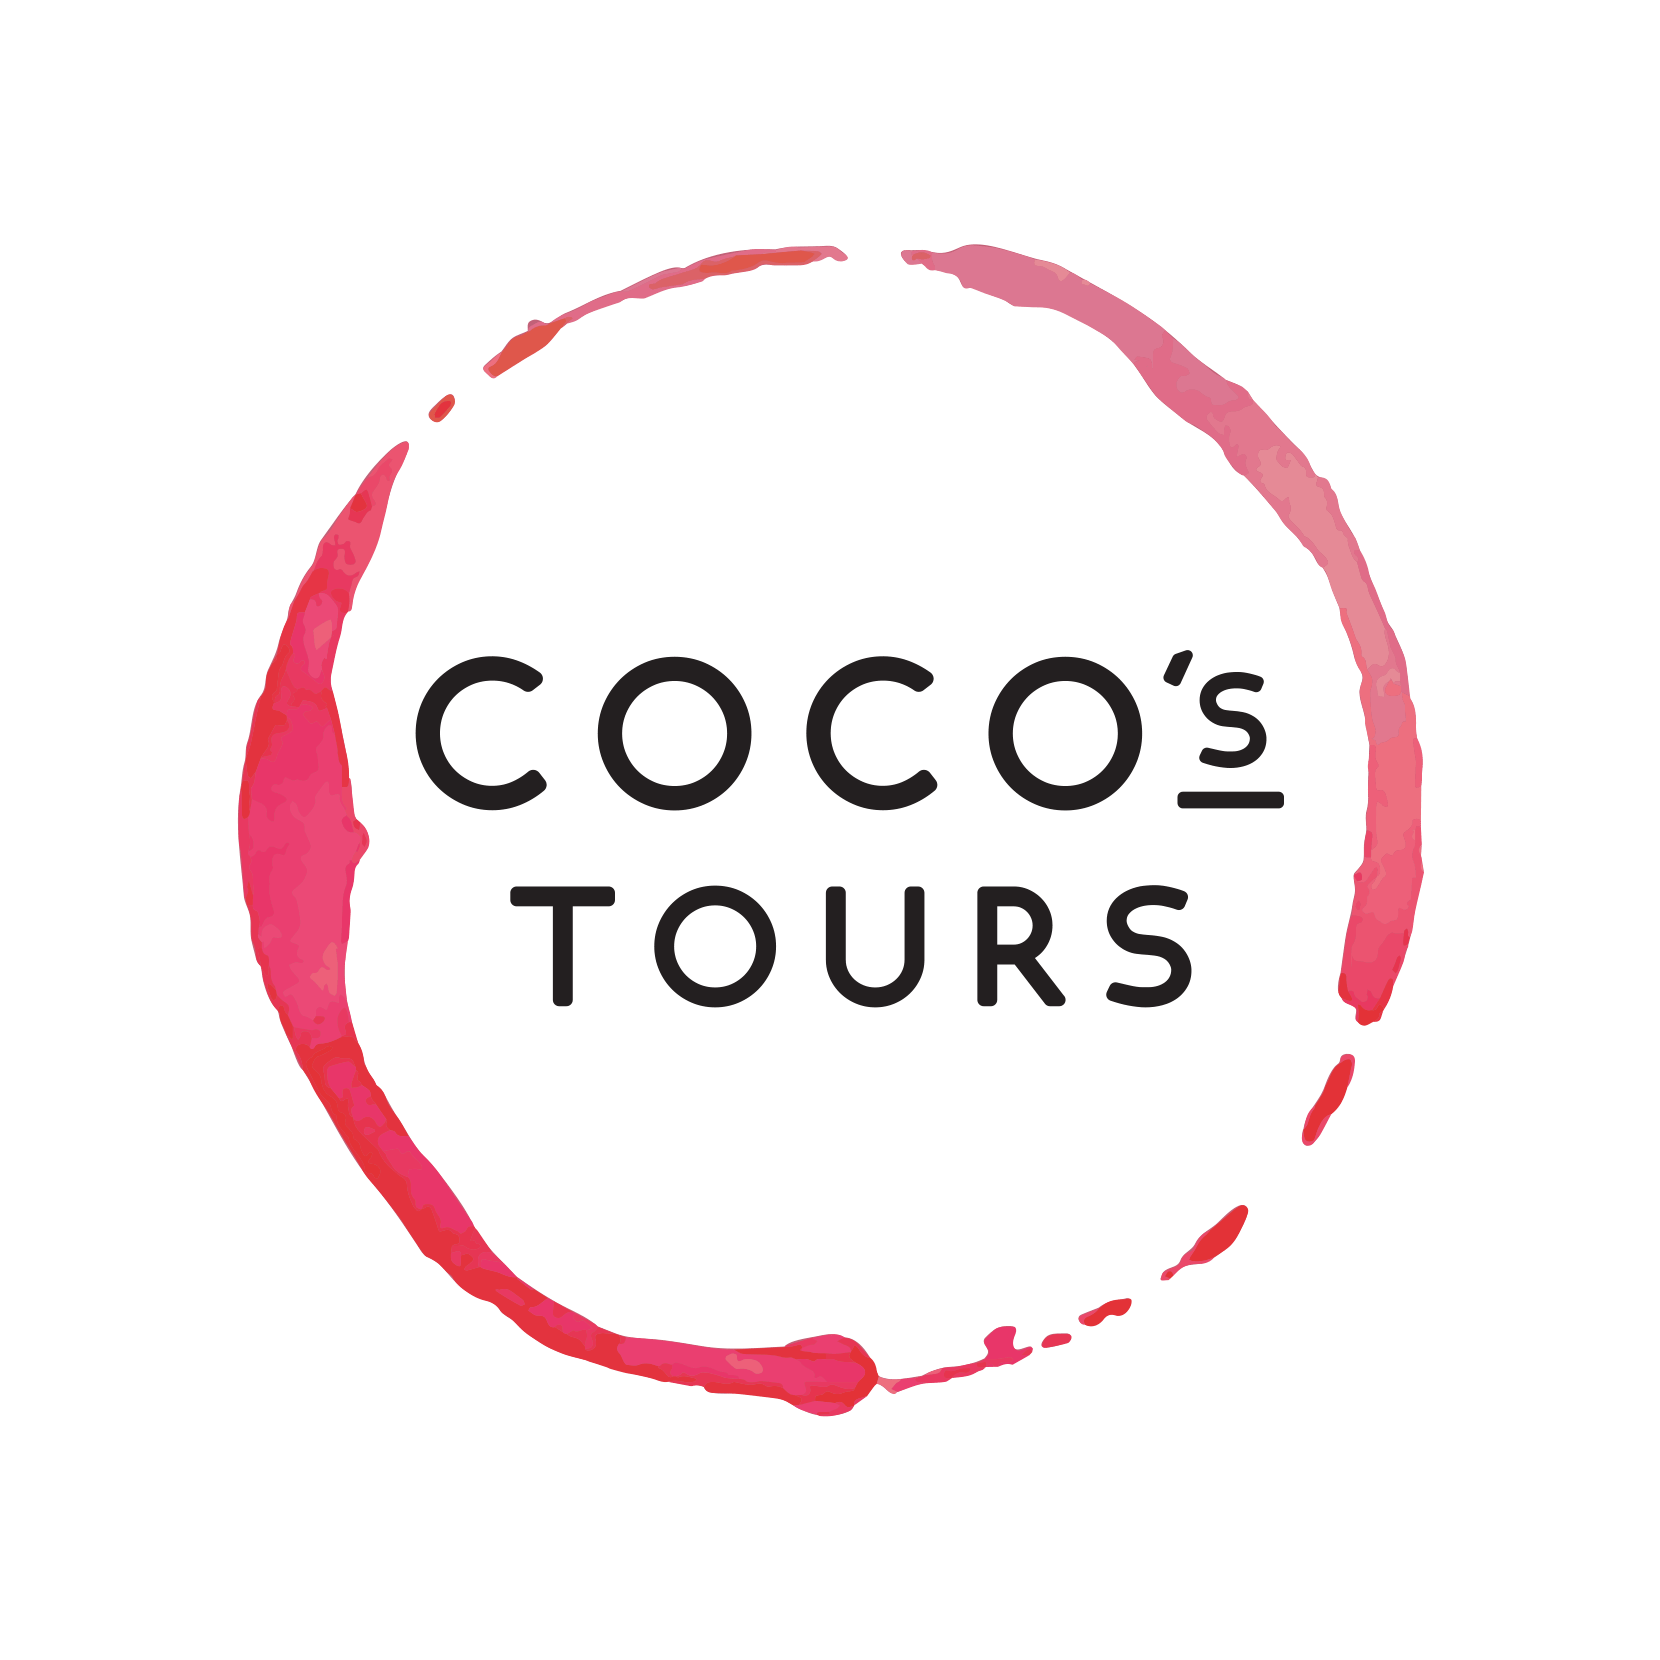 Coco's Tours